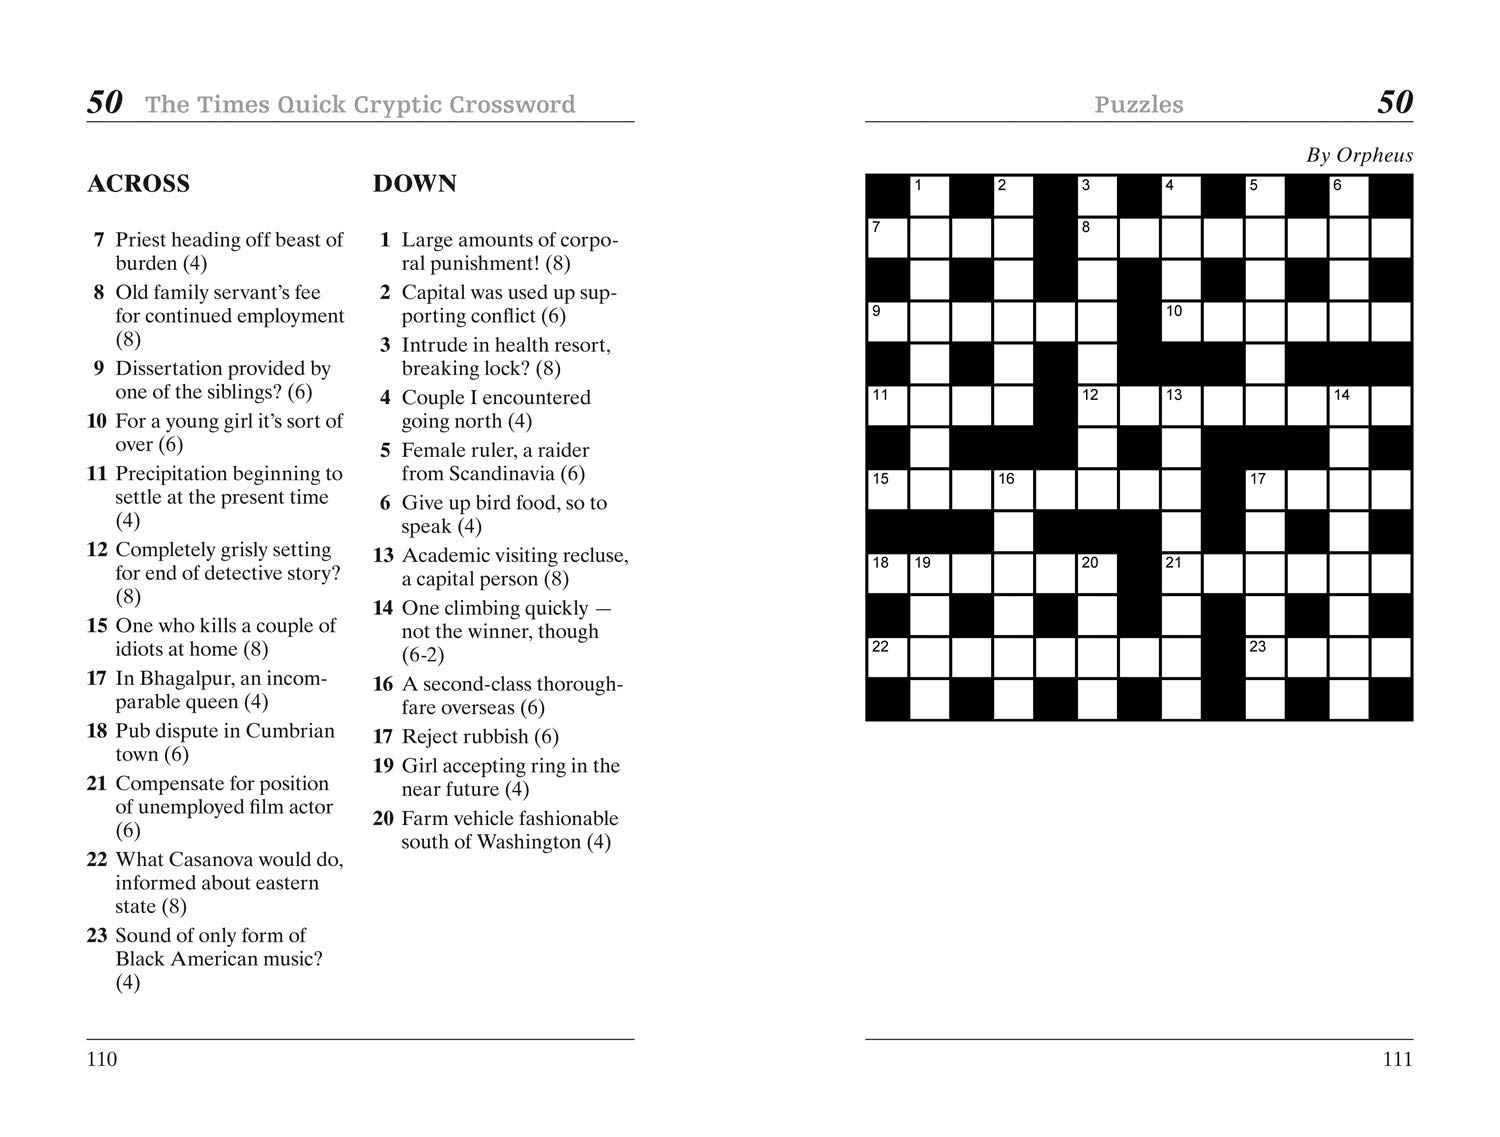 It is a picture of Printable Cryptic Crosswords in mathematical sequence